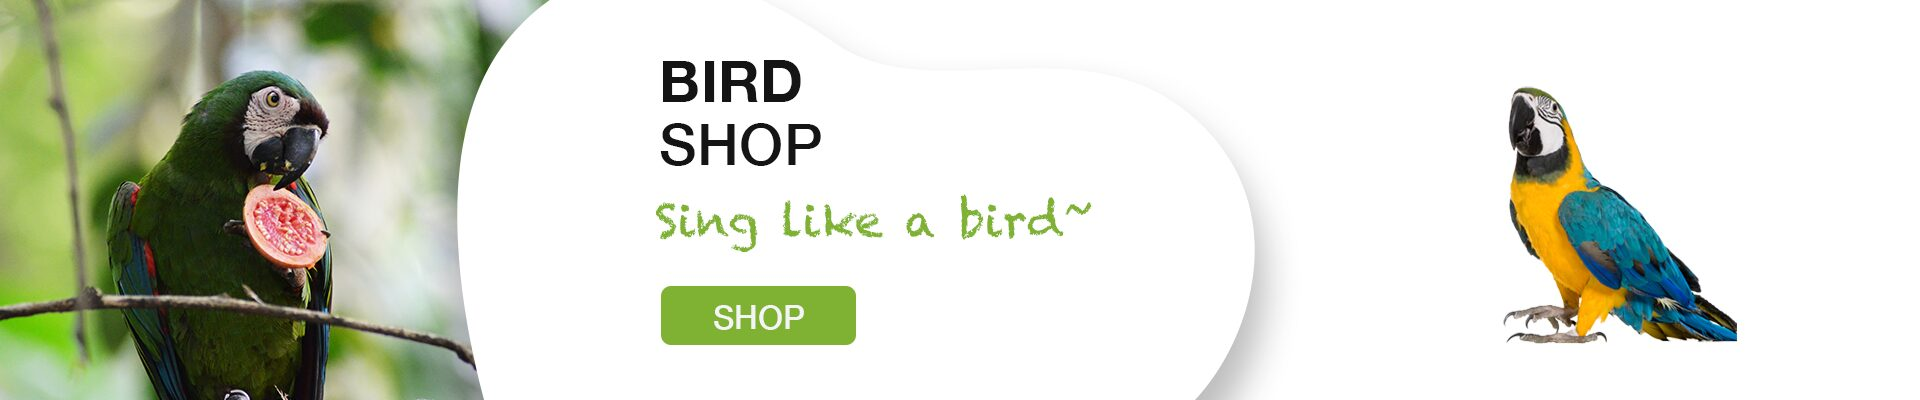 Shop for Bird Product